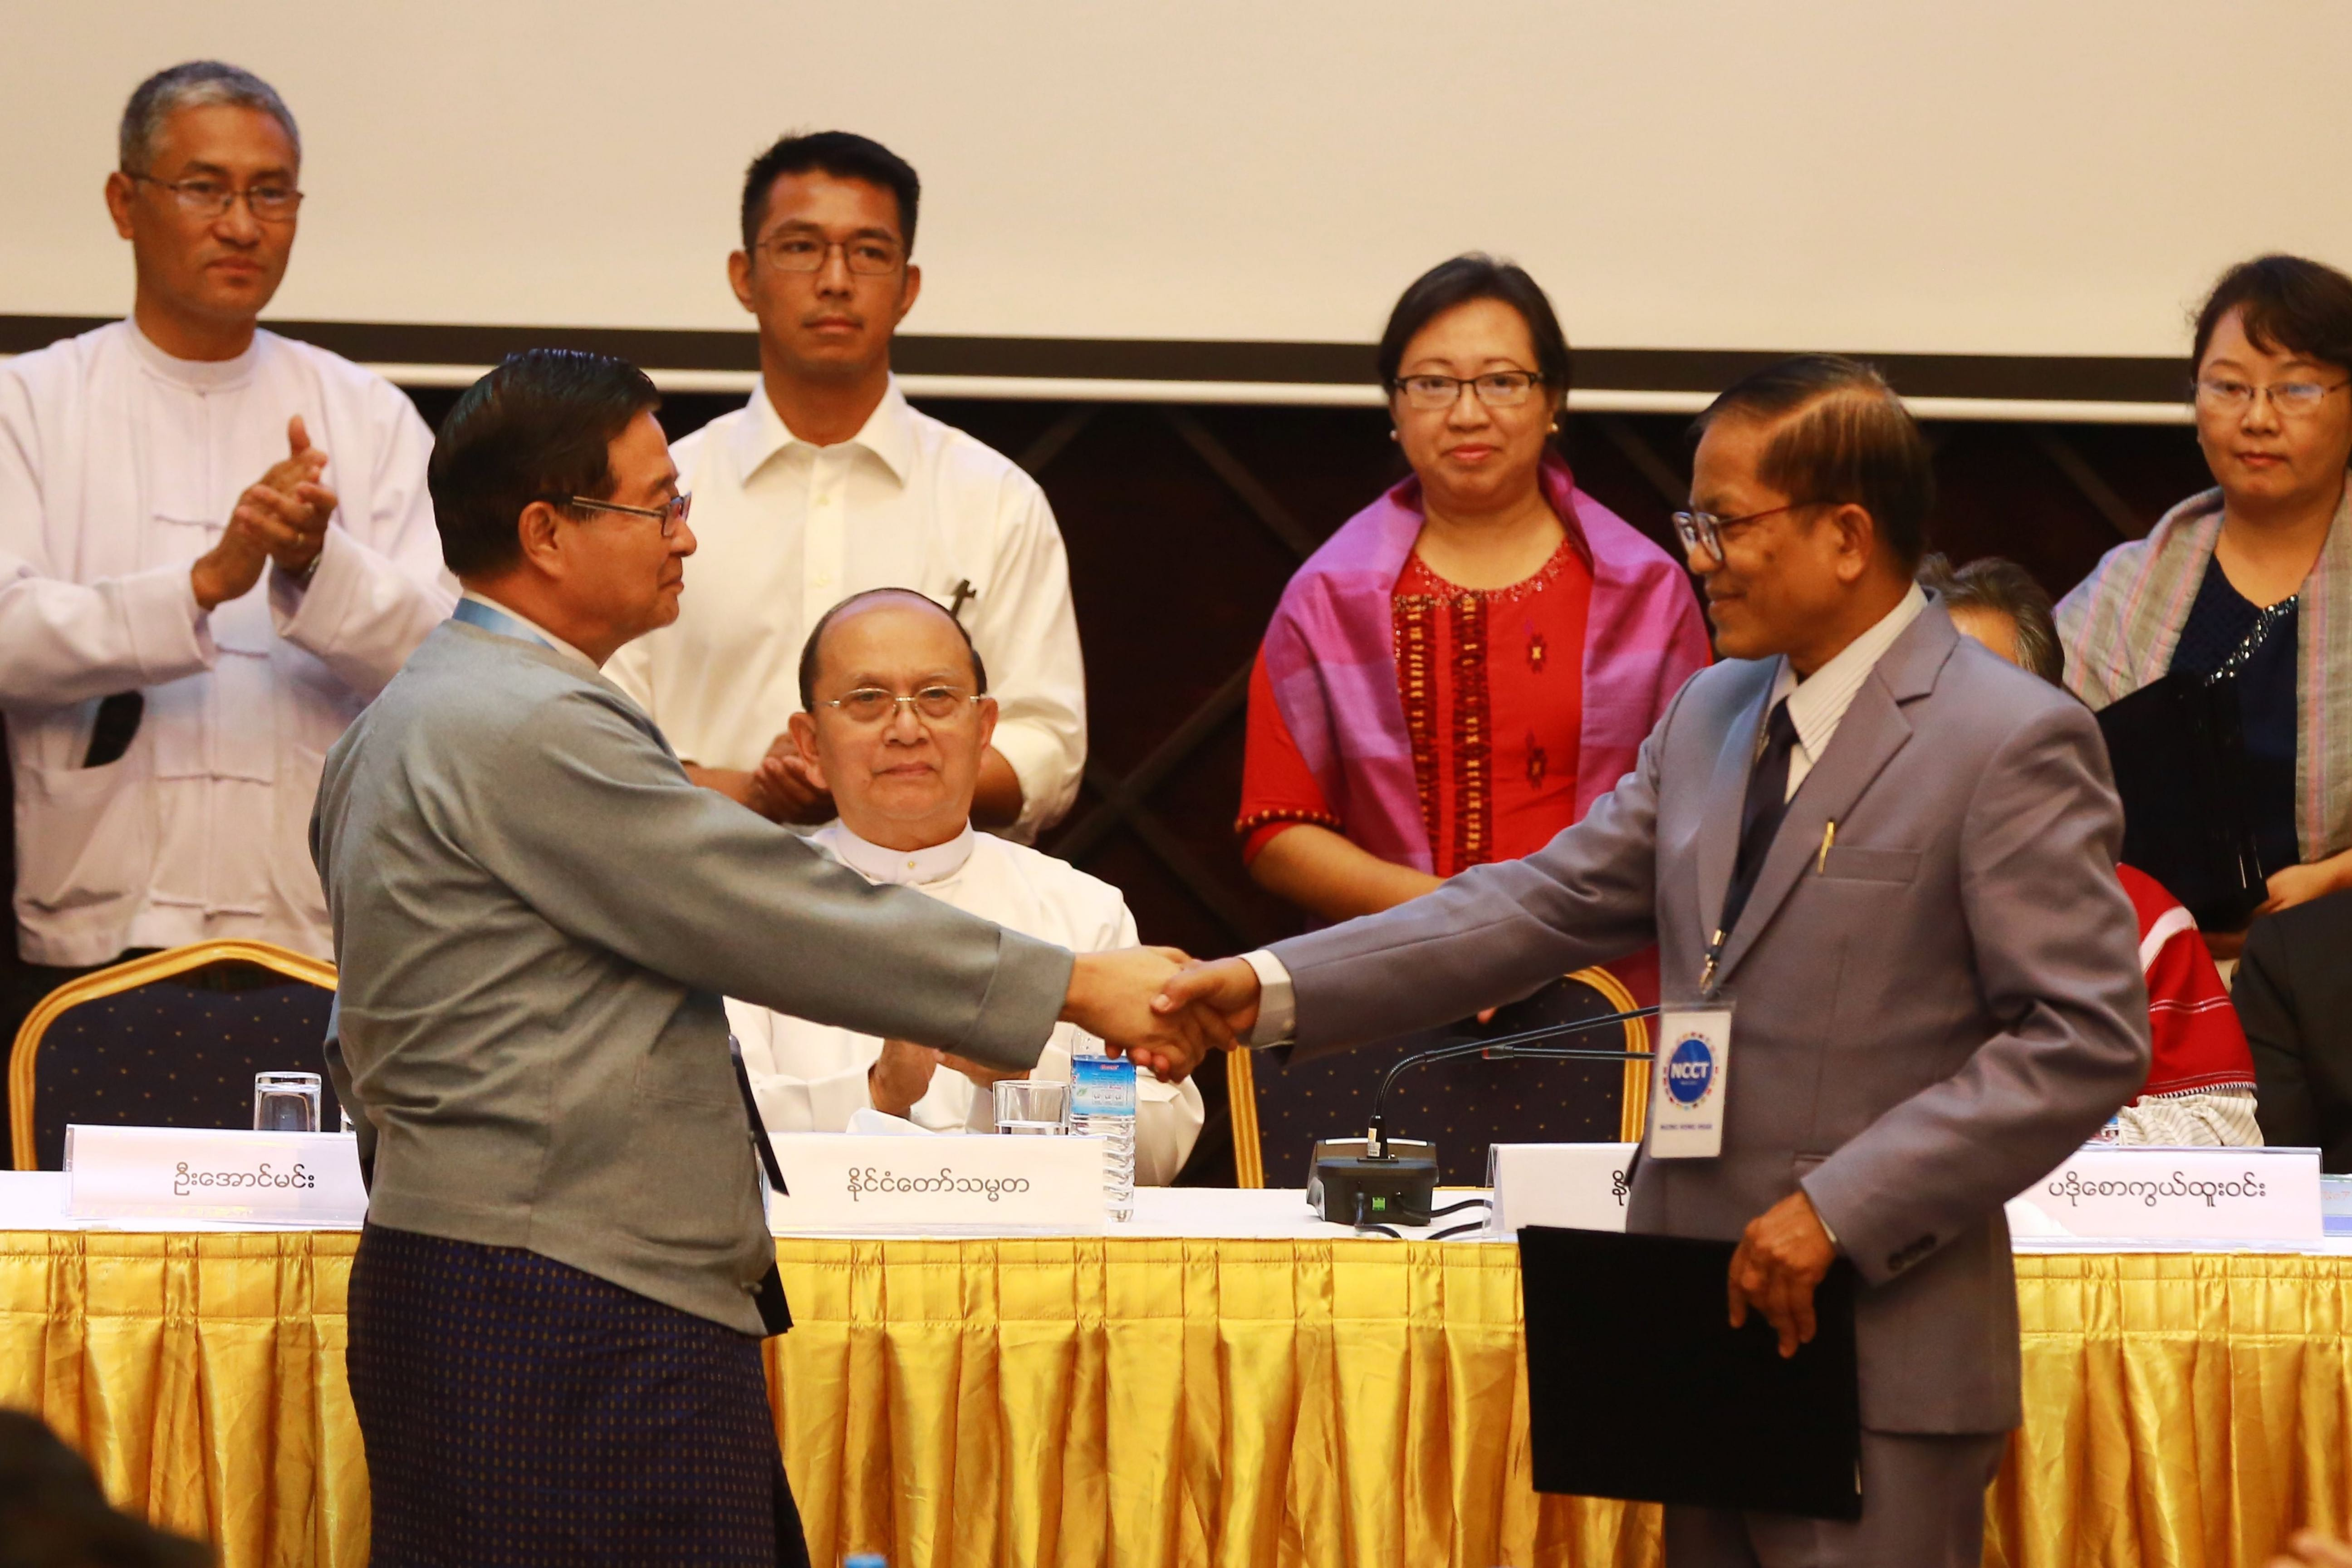 Myanmar President Thein Sein (seated, centre) looks on as Aung Min (left), vice chairperson of the Union Peace Working Committee, shakes hands with Naing Han Tha (right), a leader of the Nationwide Ceasefire Coordinating Team, after they sign a nationwide ceasefire draft agreement at the Myanmar Peace Centre in Yangon on 31 March 2015. Ja Nan Lahtaw is pictured (standing, centre). © STR/AFP via Getty Images